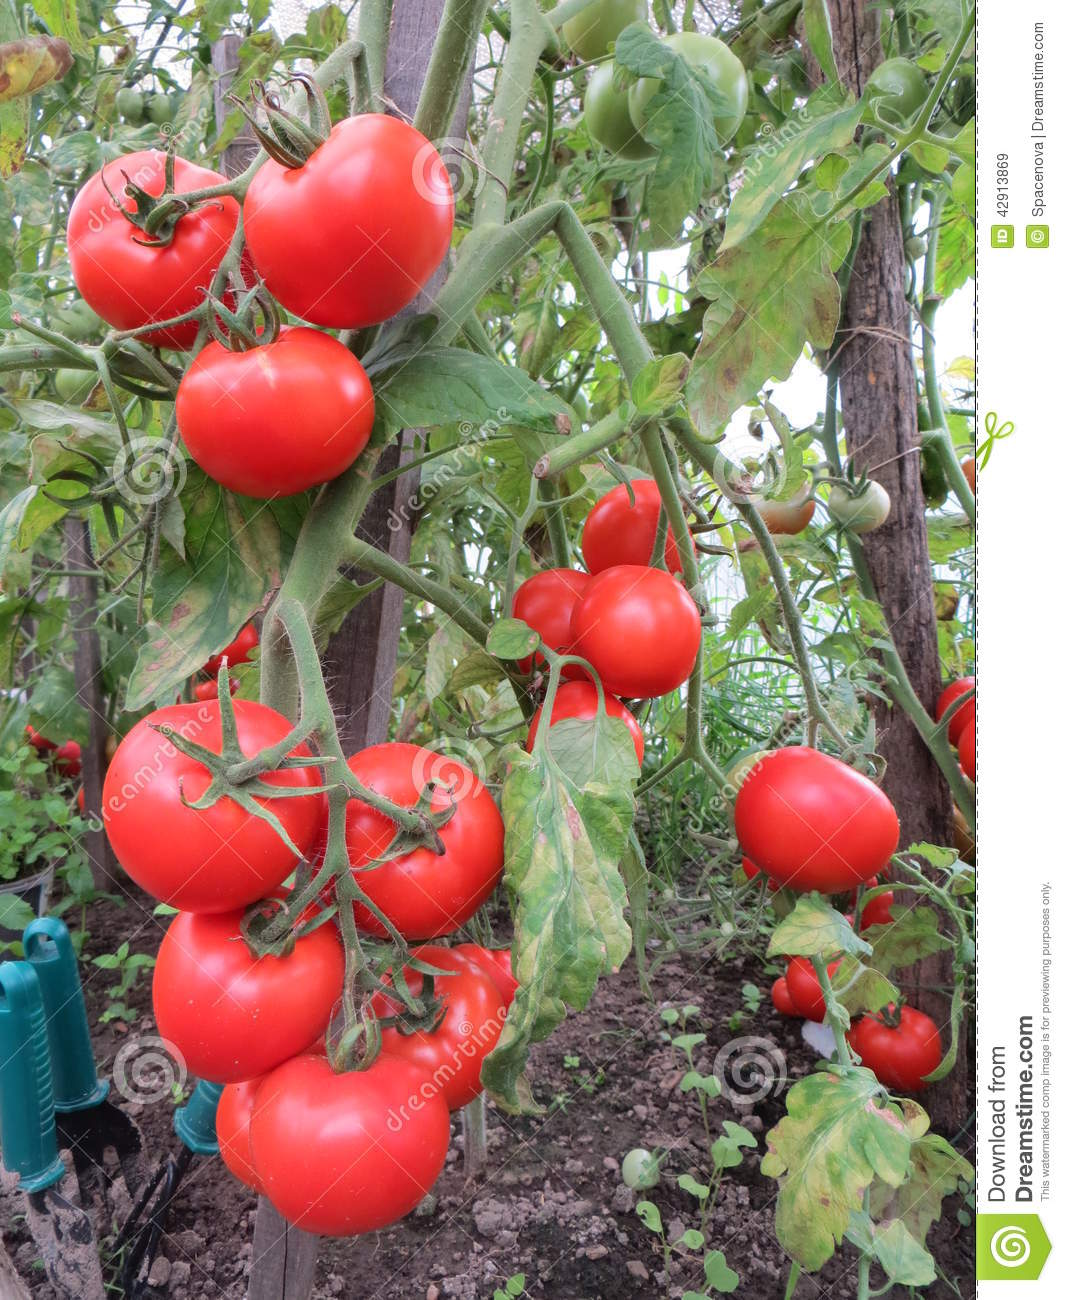 Tomatoes In A Bio Garden Stock Image Image Of Clusters 42913869